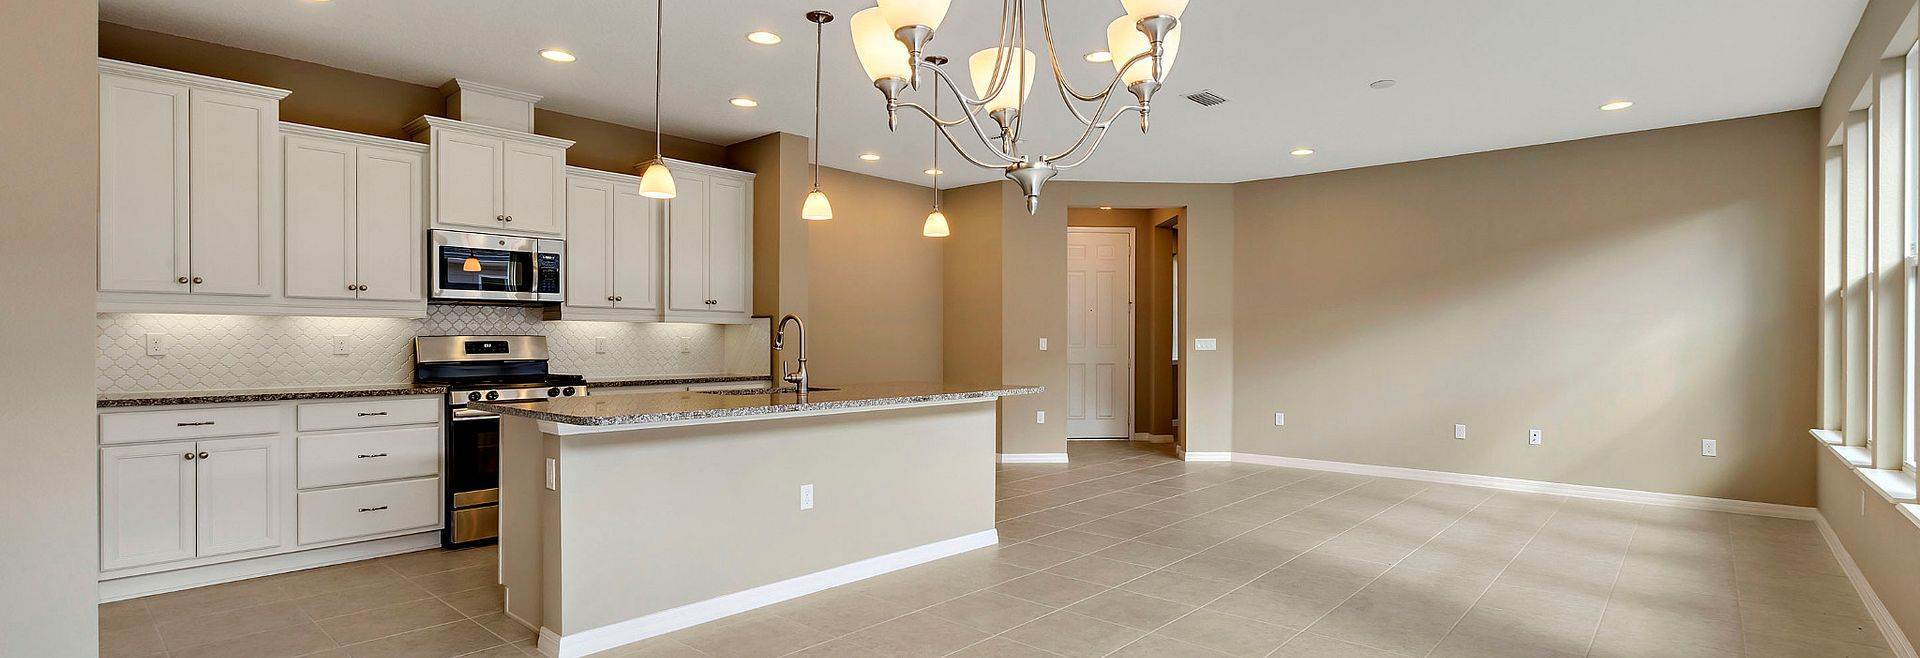 Trilogy Orlando Amalfi Plan Quick Move In Home Dining